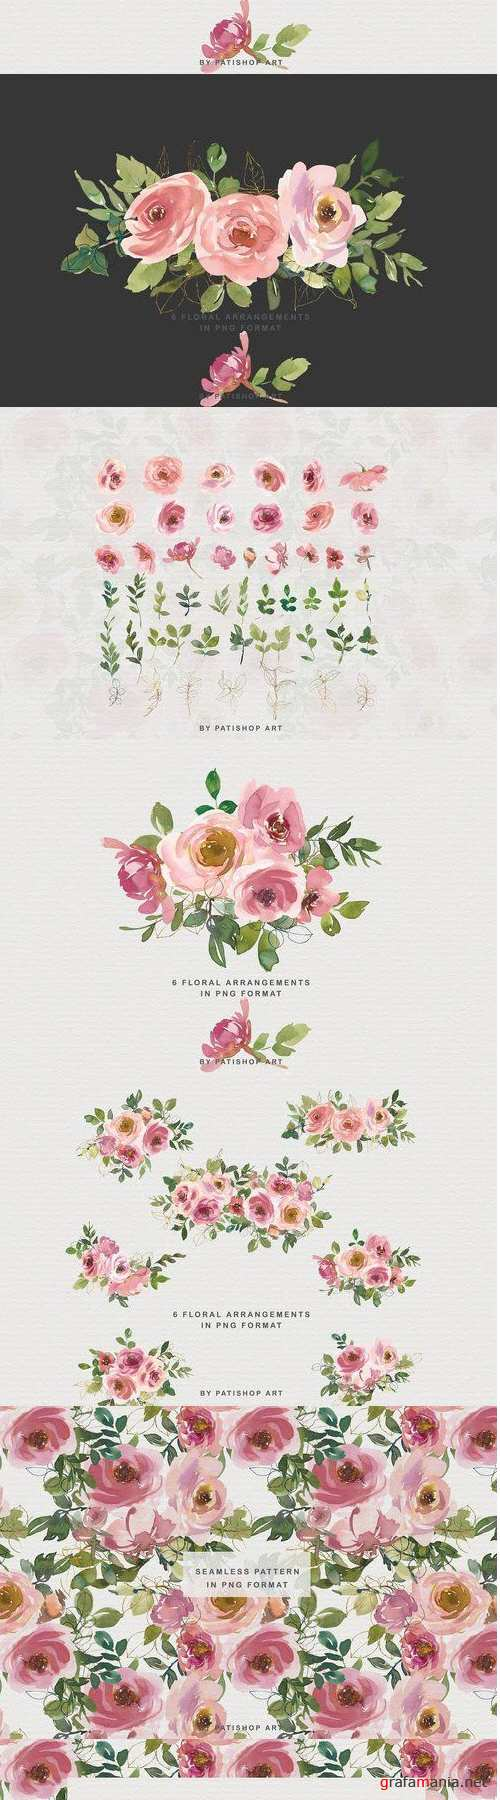 Blush Watercolor Floral Clipart Set - 4422542